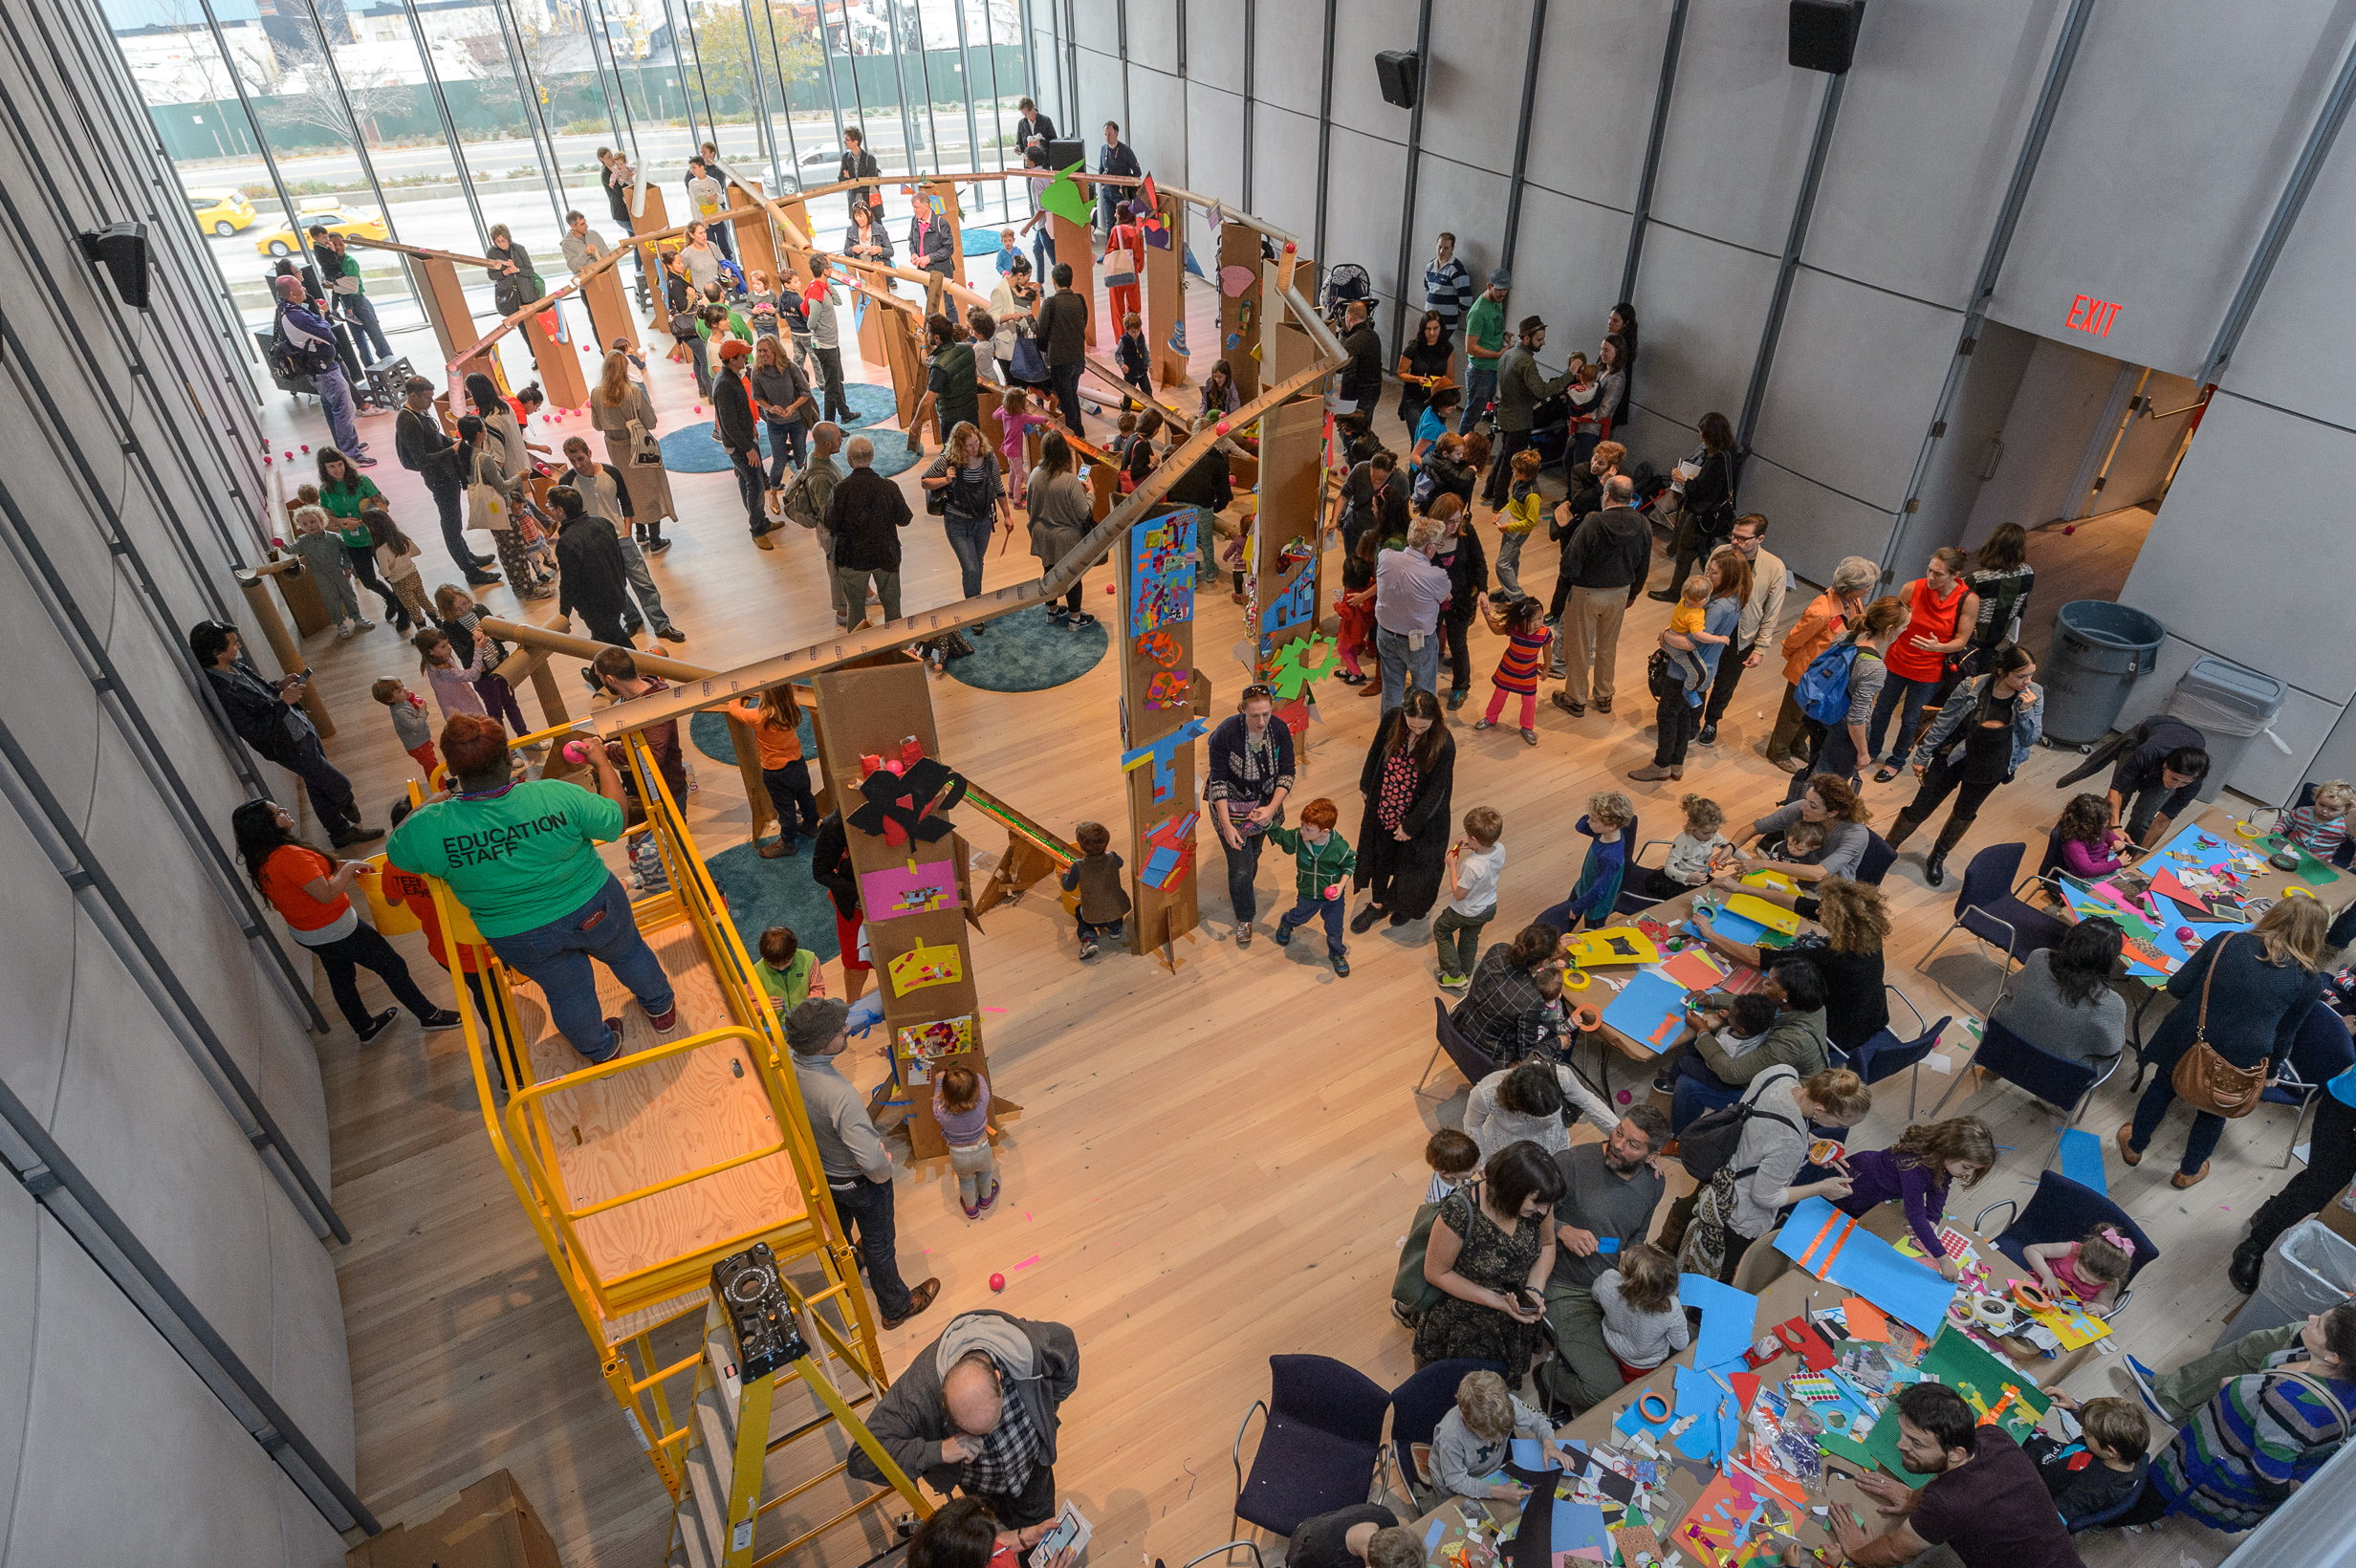 Families activate a giant marble run, designed by artist McKendree Key in the Laurie M. Tisch Education Center, 2015. Photo by Filip Wolak